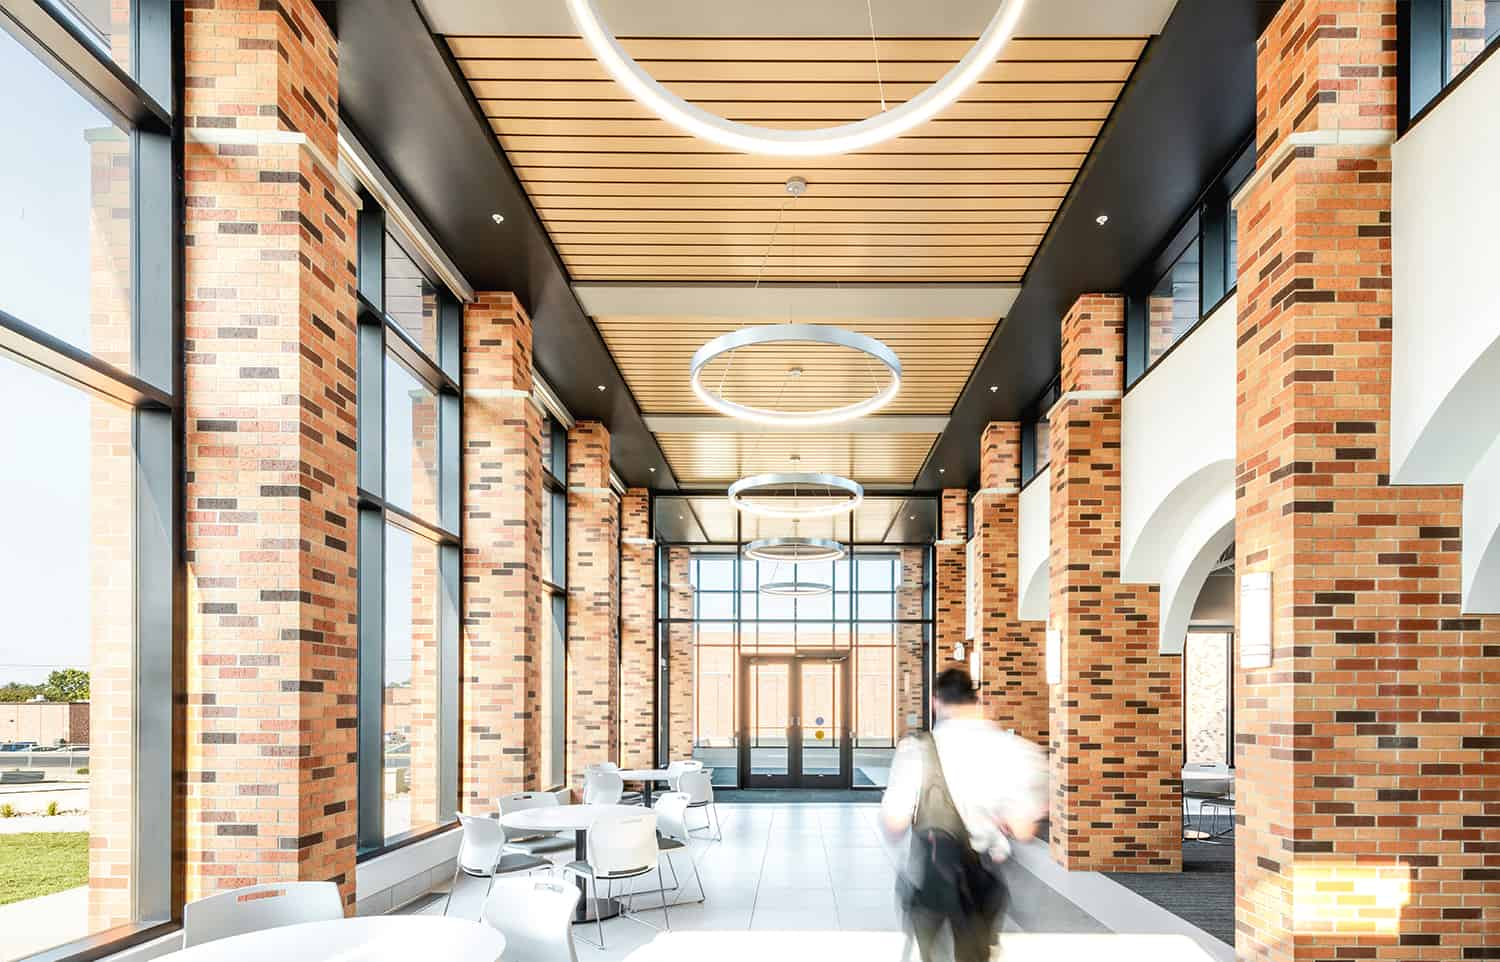 Interior corridor in the entry to the Healthcare Center of Learning, surrounded by exposed brick, wood paneling, feature circular lighting, and open seating.